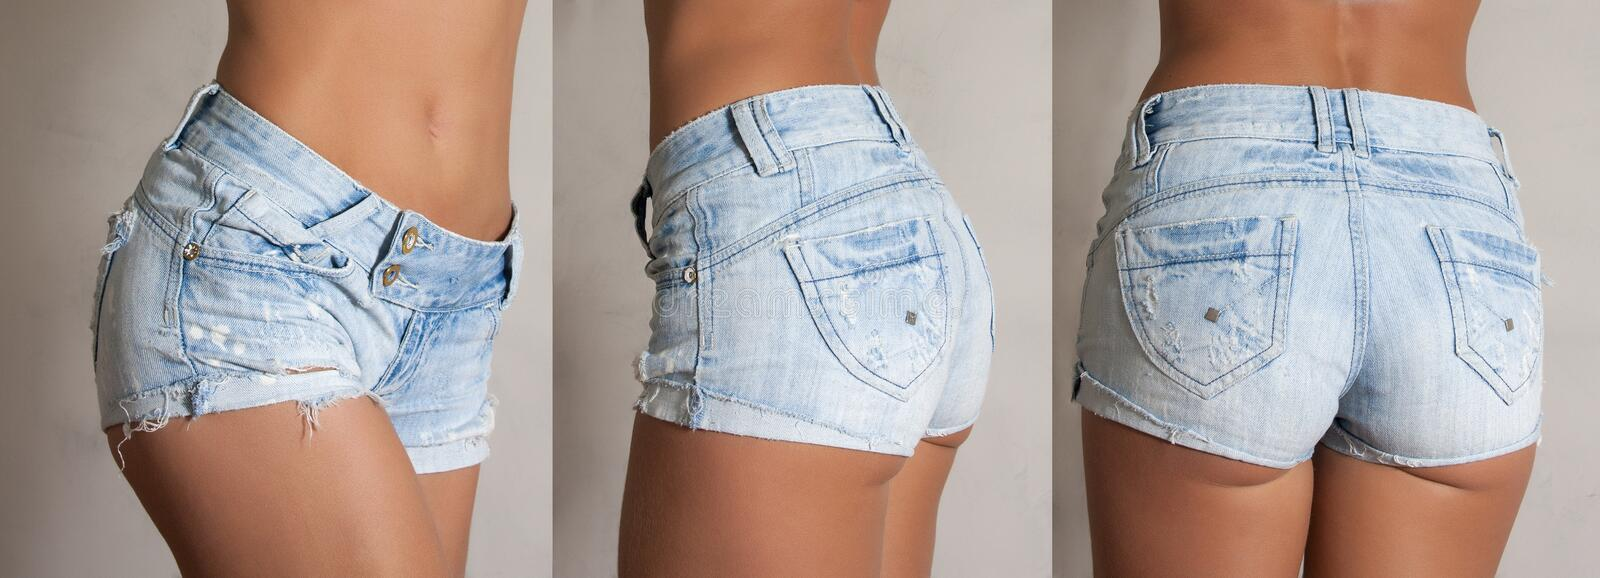 Download Jeans Shorts Stock Image - Image: 36672381